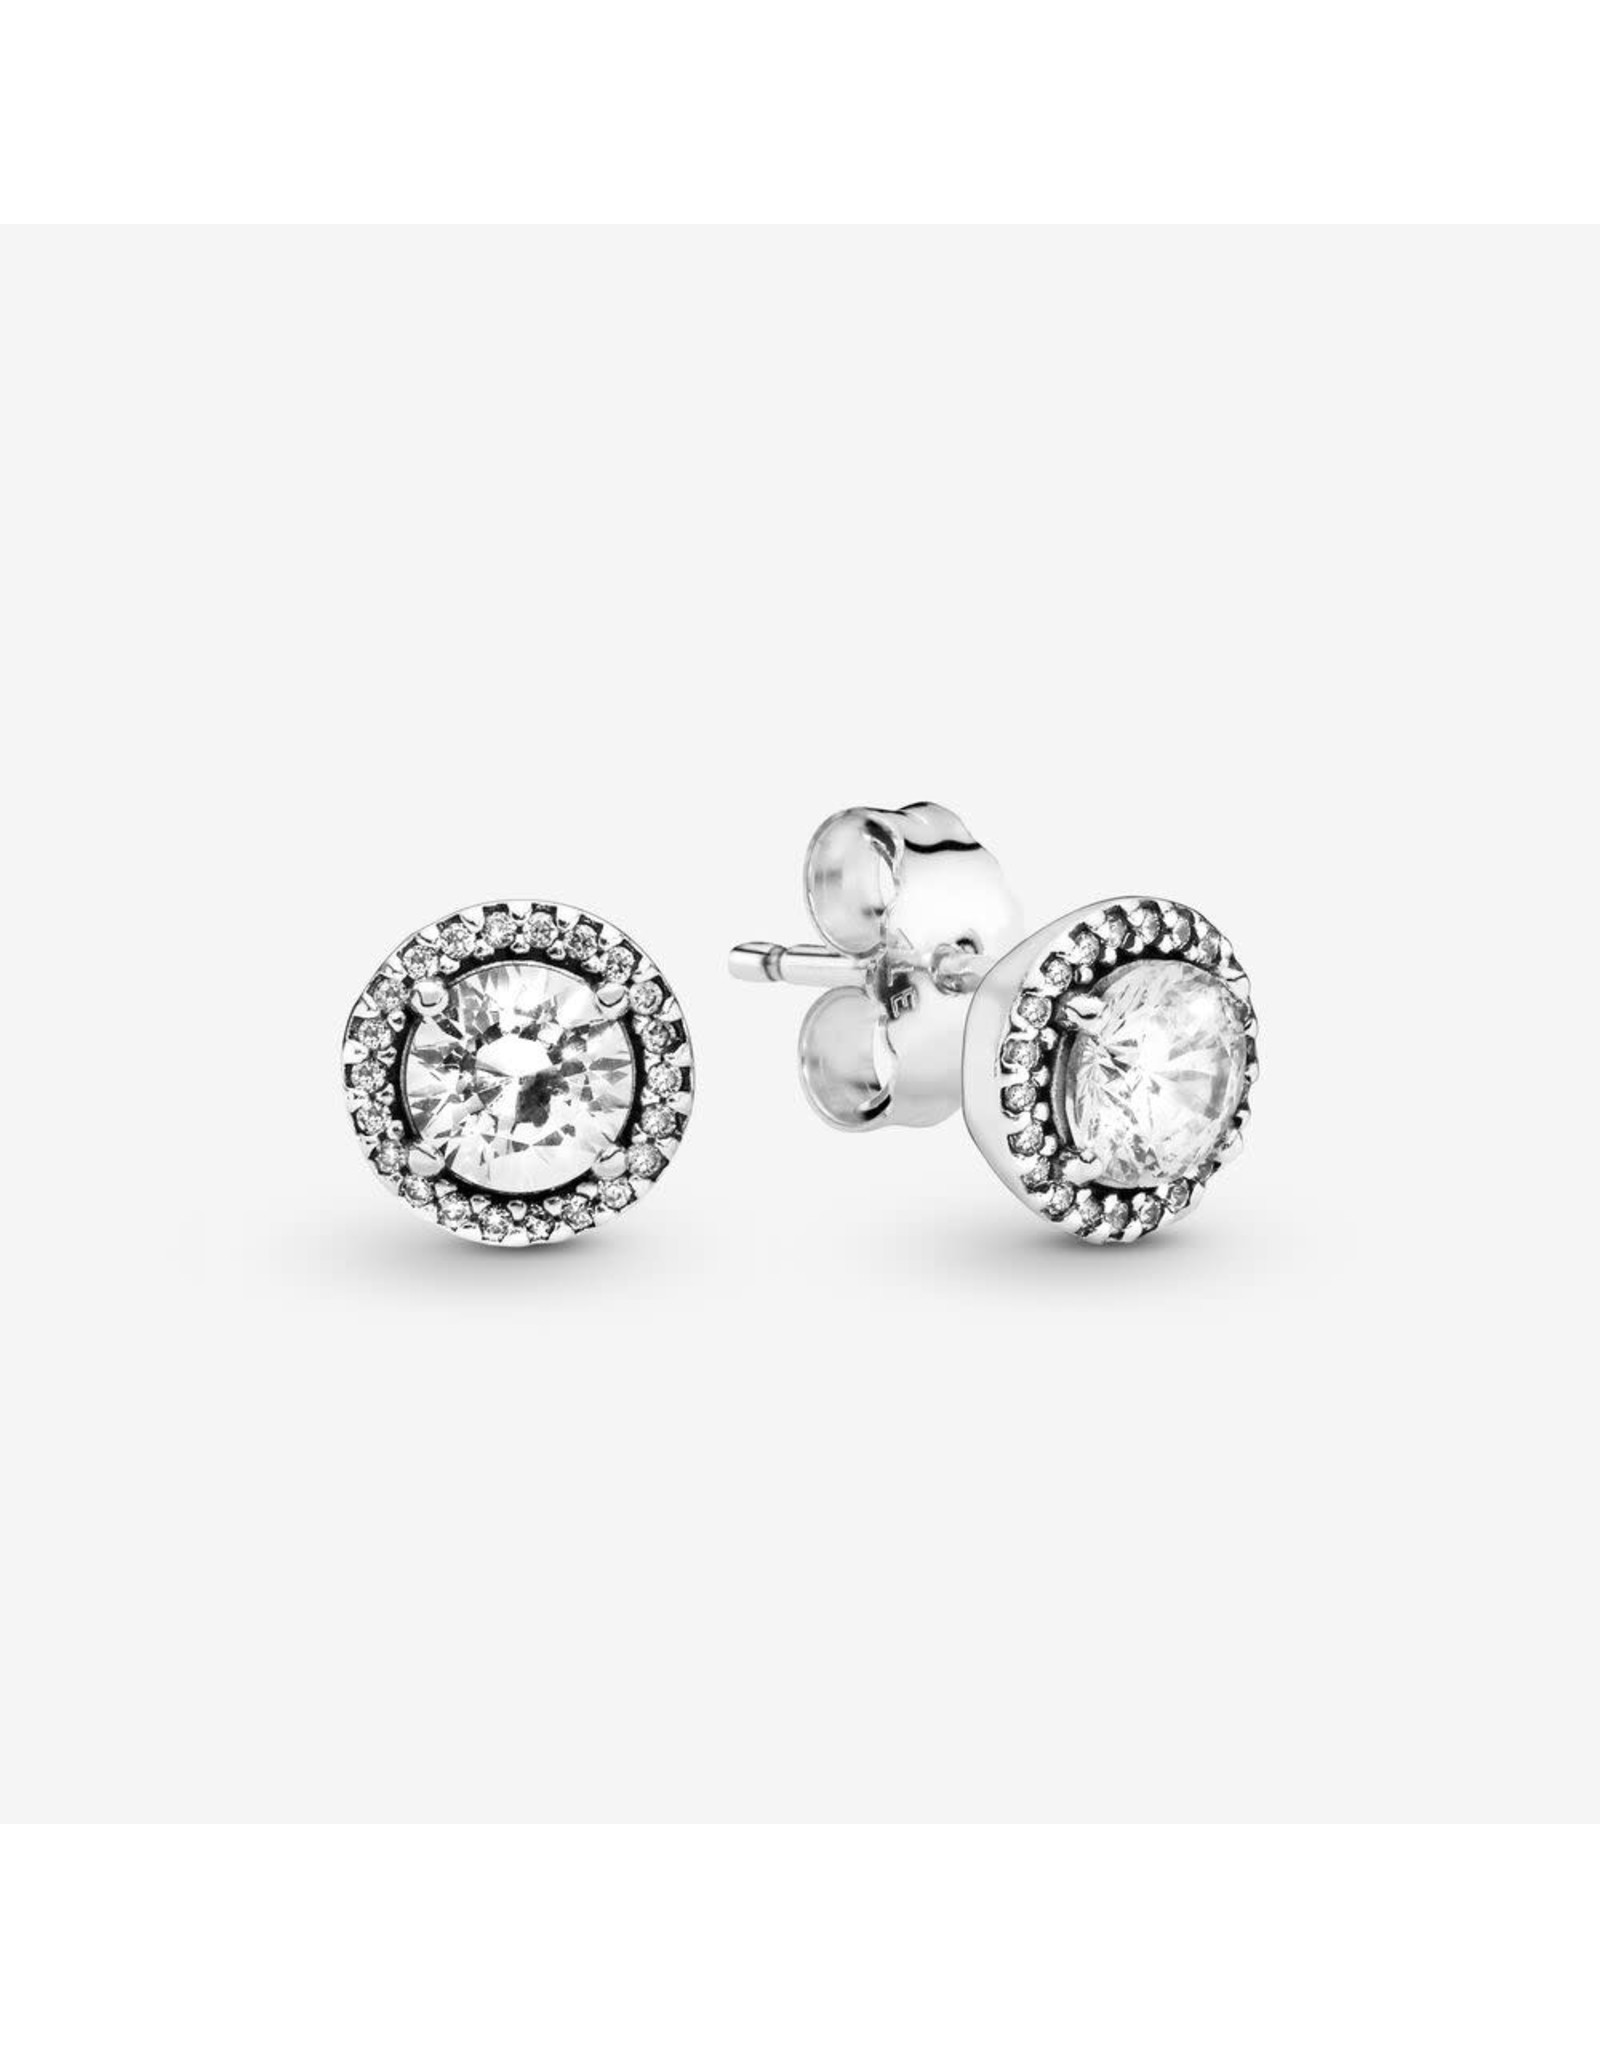 Pandora Pandora Stud Earrings ( 296272CZ)In Sterling Silver With Clear CZ